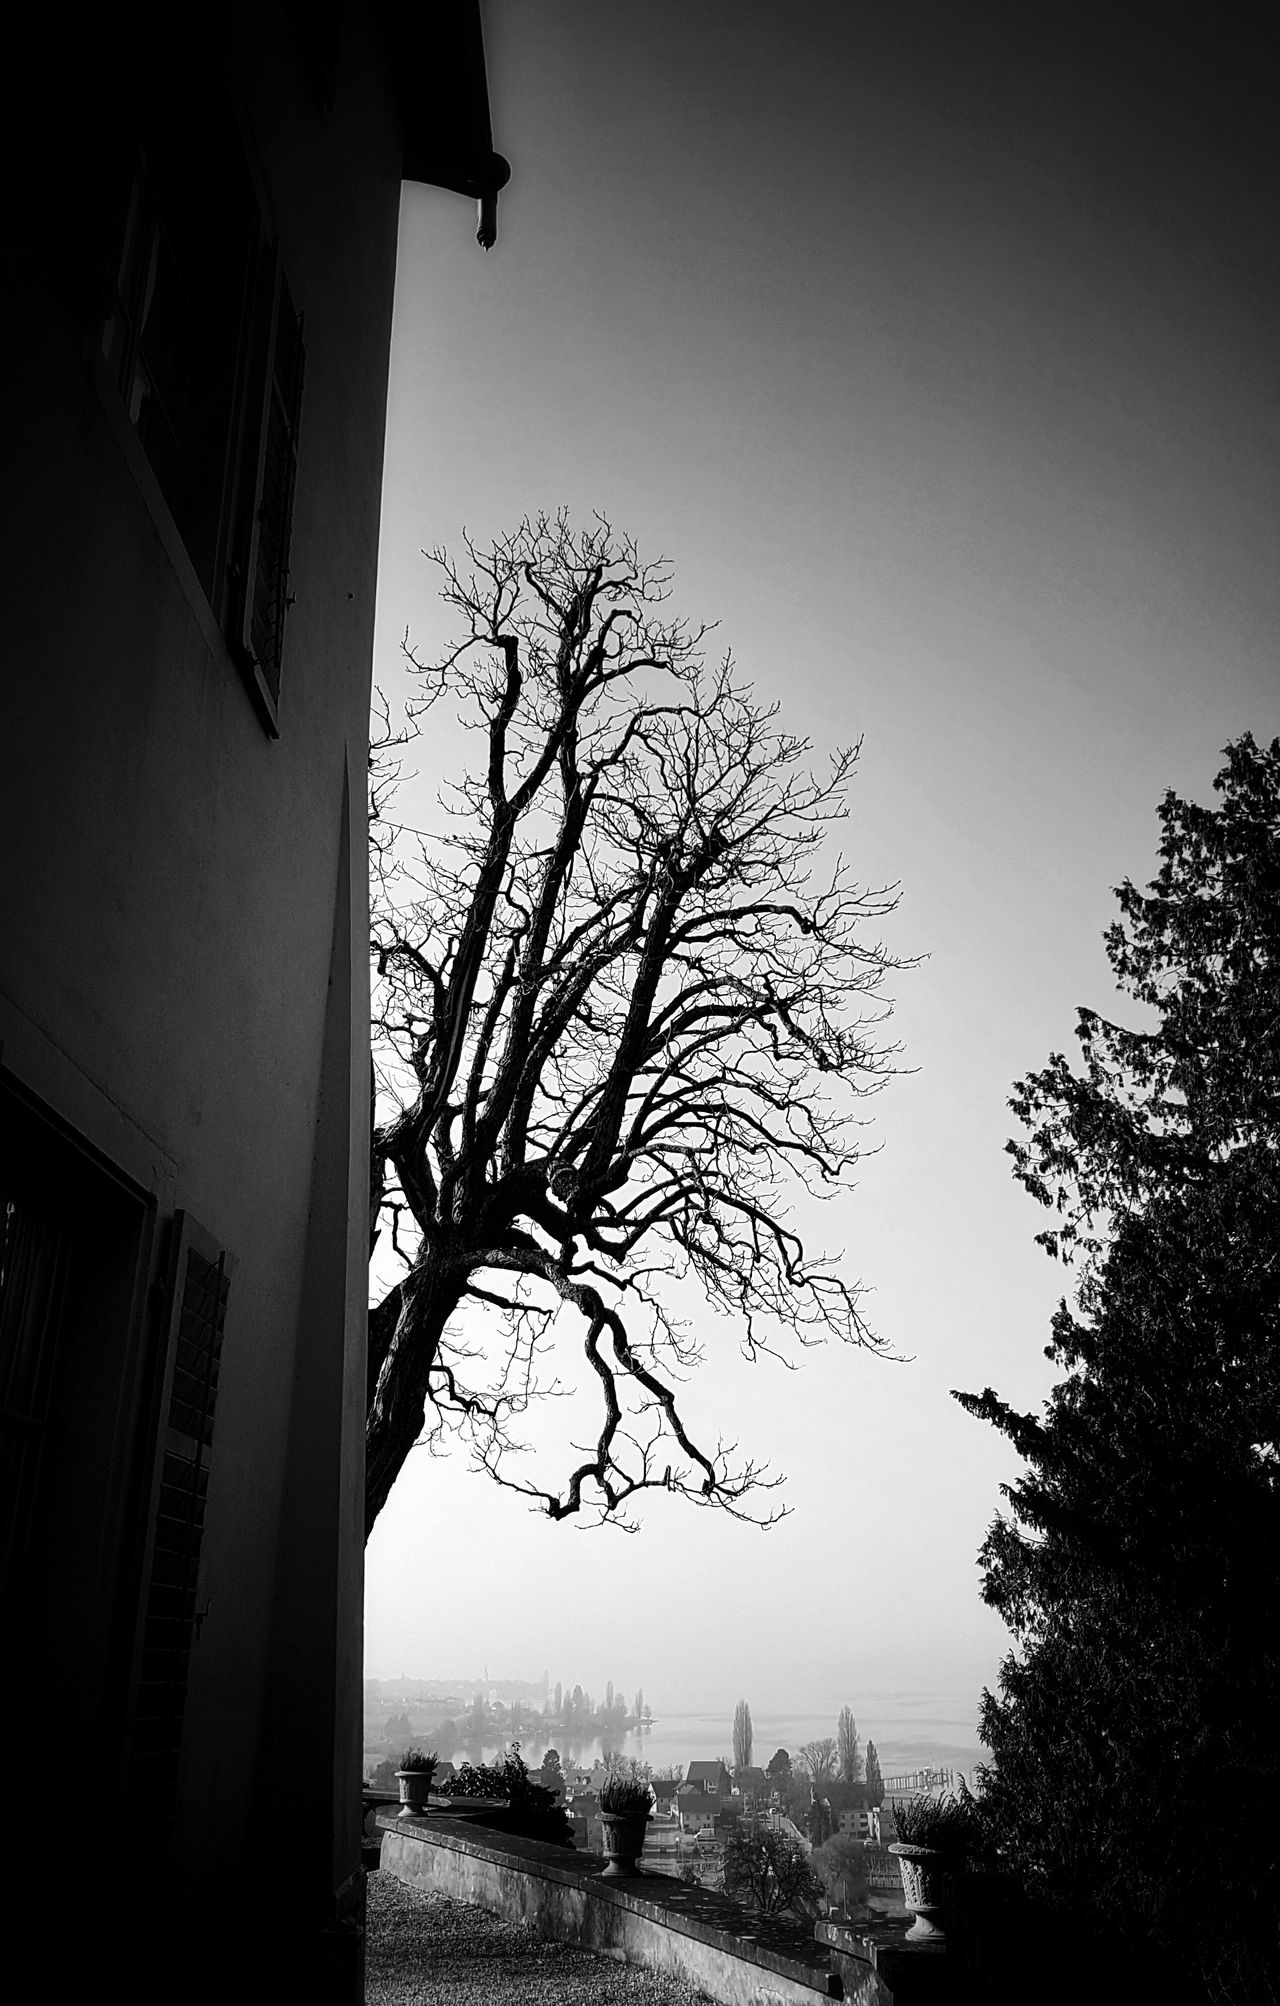 Tree Silhouette No People Low Angle View Built Structure EyeEm Black&white! Black&white Old House Old Buildings Old Architecture Architecture_collection Black & White Mypointofview Monochrome Photograhy Taking Photos Monochrome _ Collection Light And Shadow Castle Blackandwhite Photography Castle View  Castleporn Tree Building Exterior